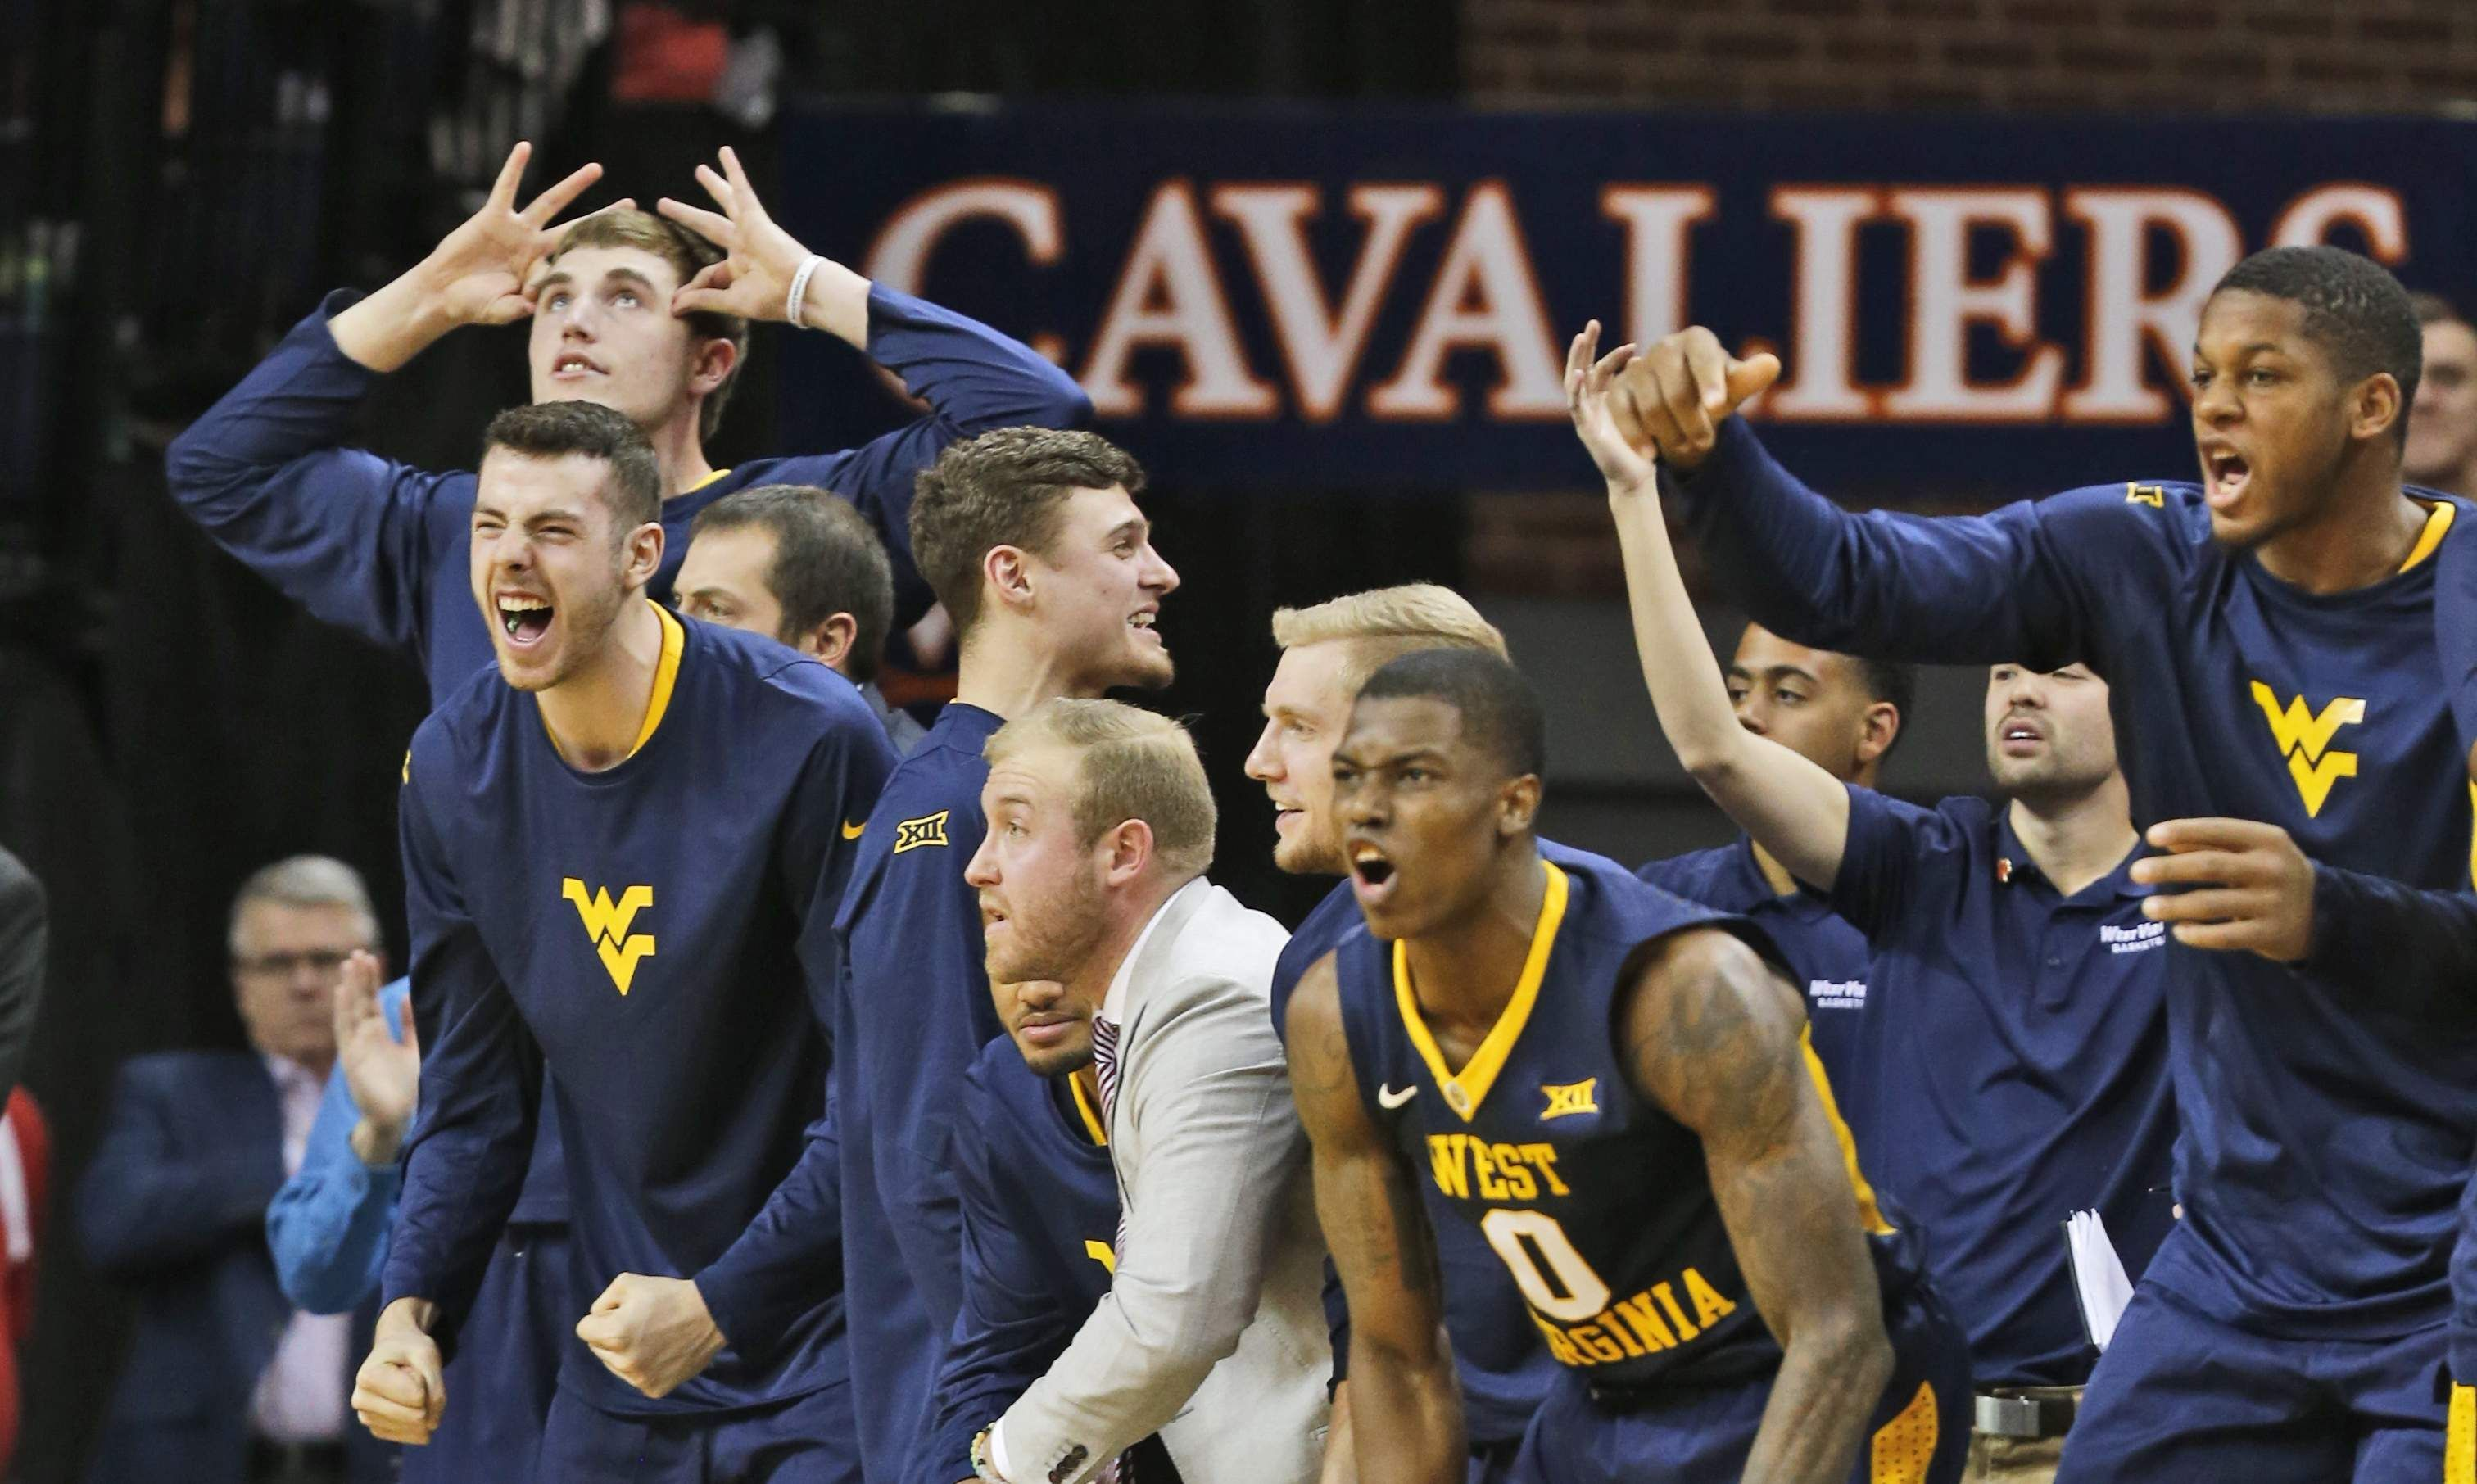 No. 25 WVU basketball knocks off No. 6 Virginia Wvu